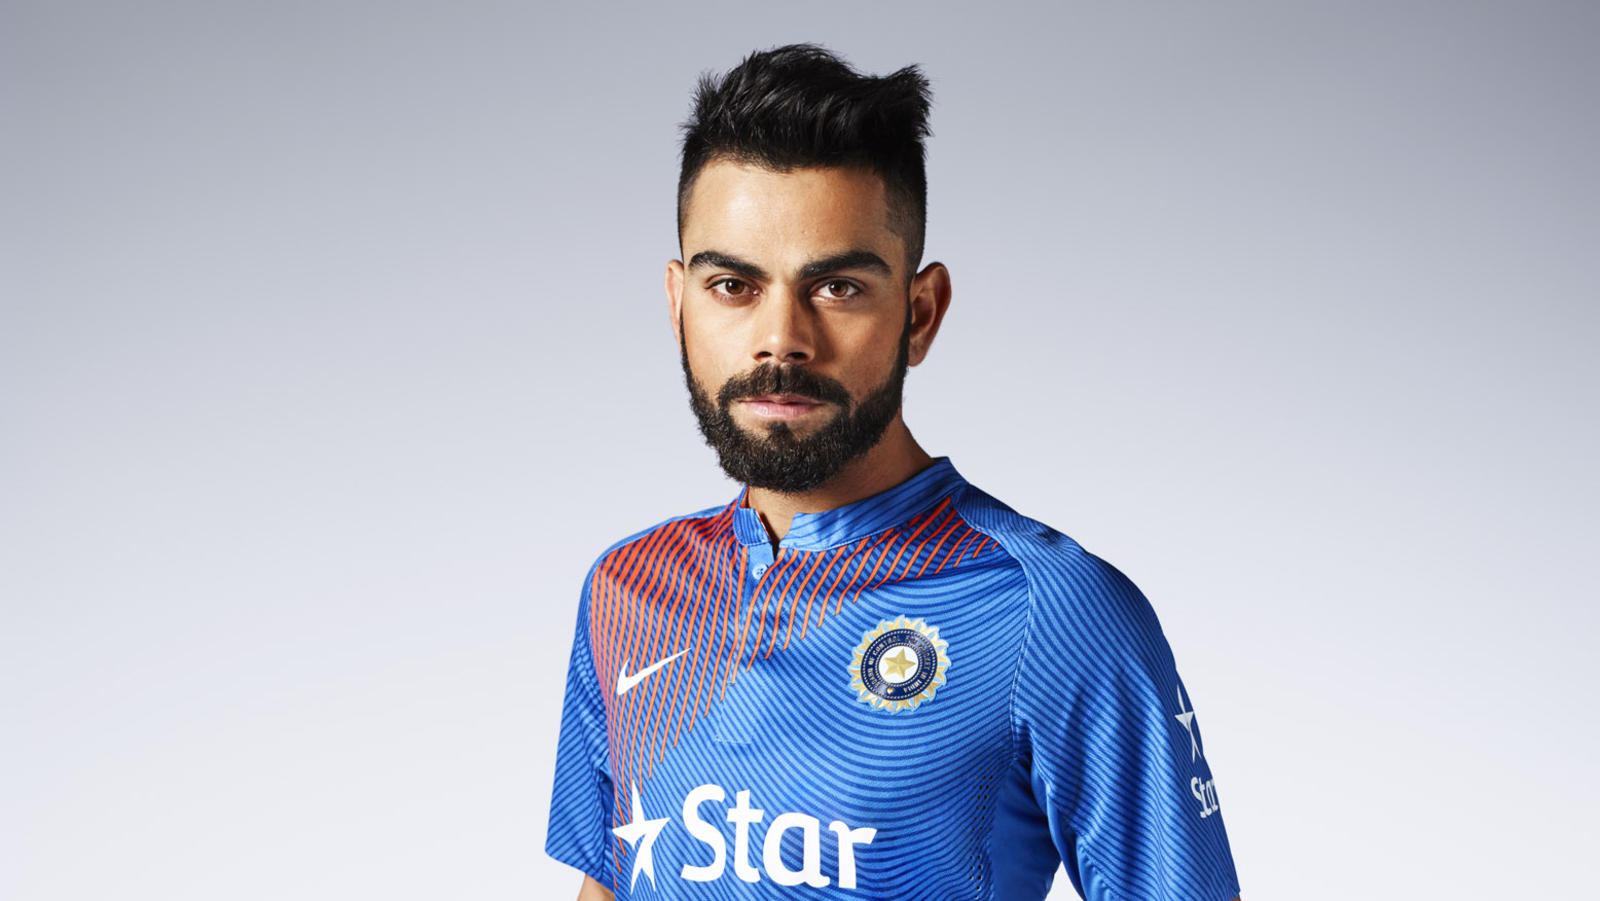 e6c68465401 The Legacy and Future of Team India - Nike News